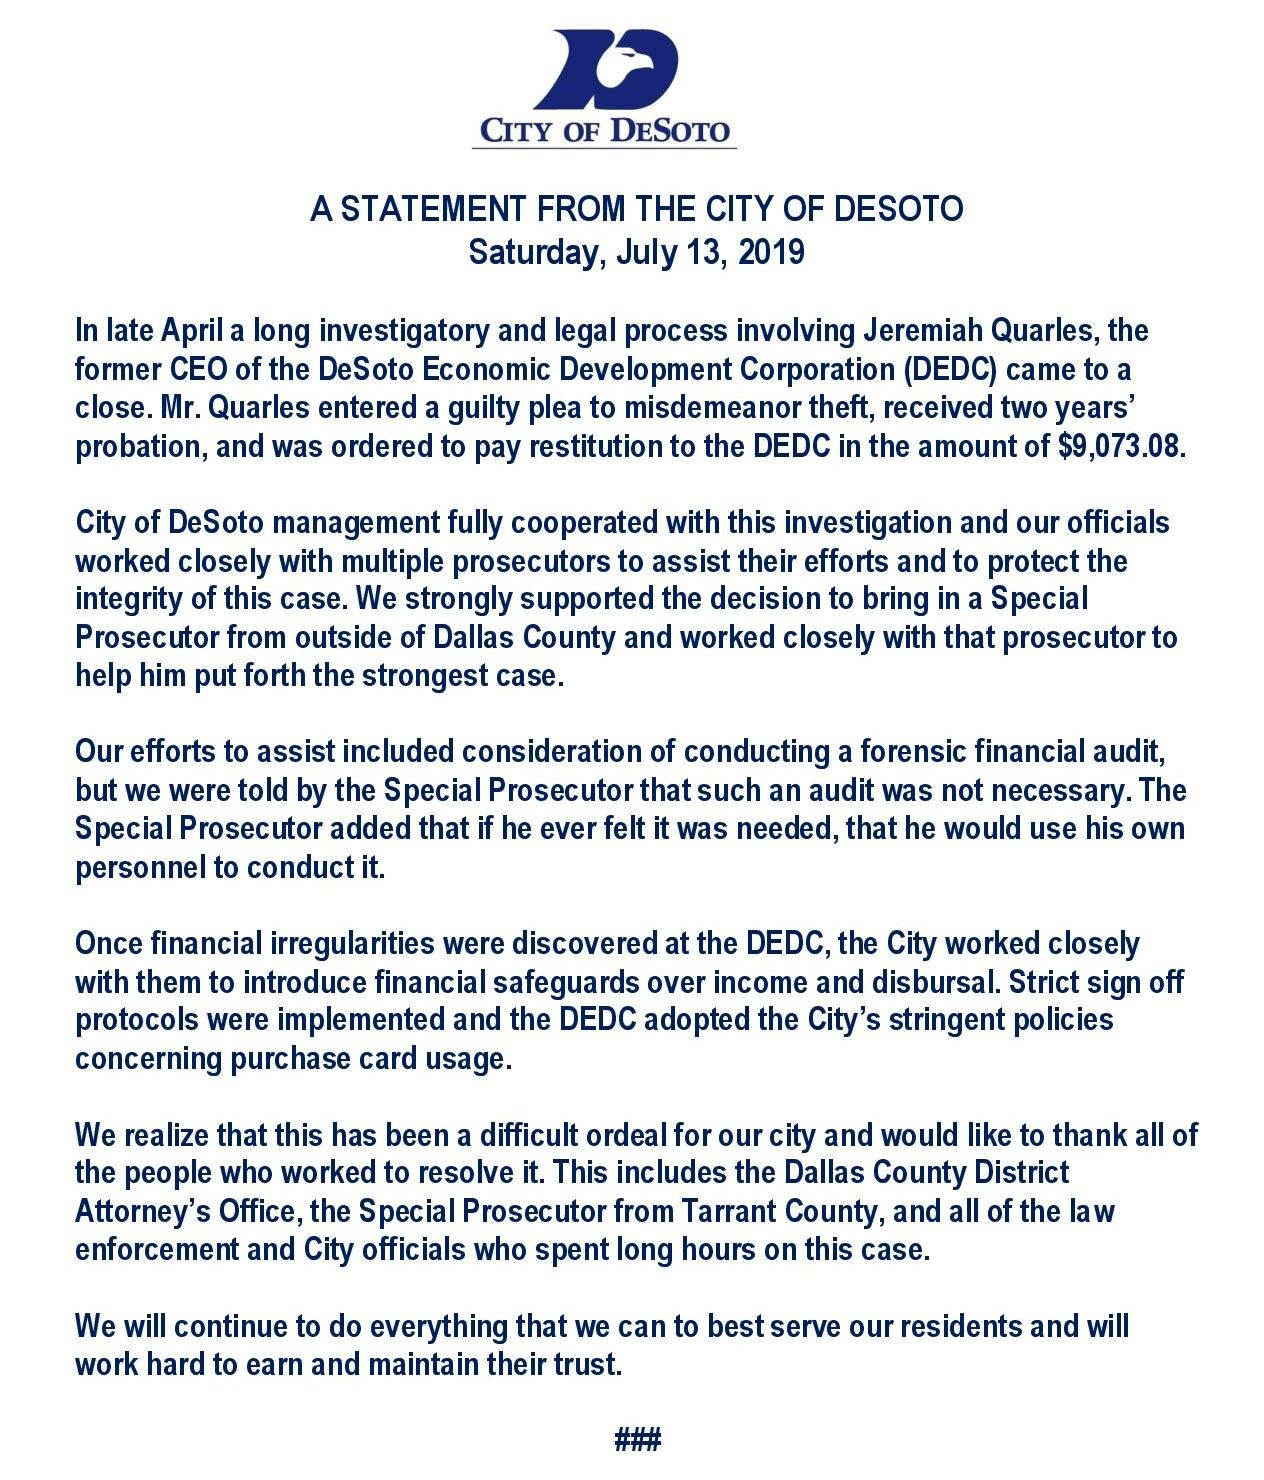 A STATEMENT FROM THE CITY OF DESOTO-FINAL